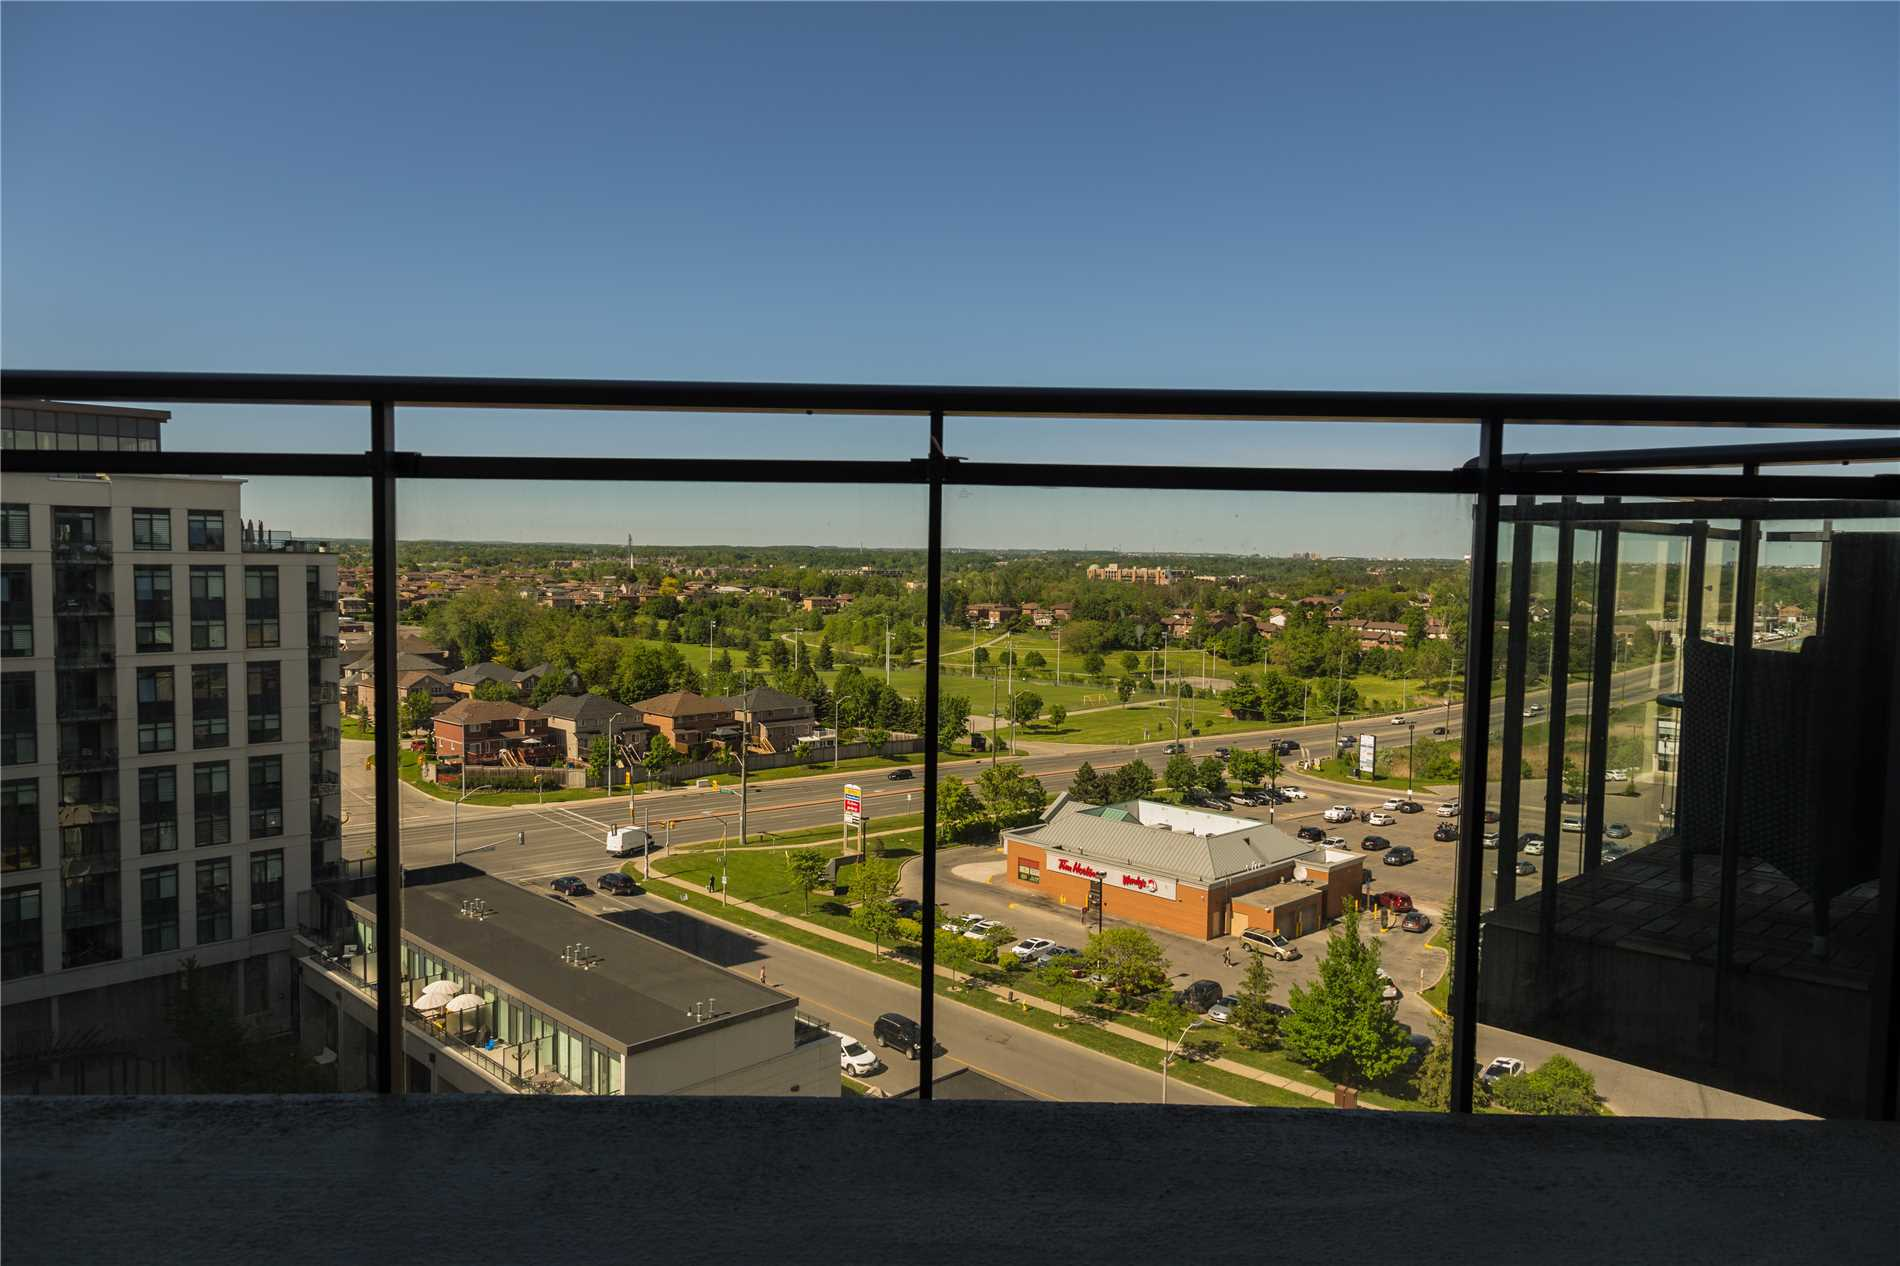 Just What U Have Been Looking For A Lovely One Bedroom In Newly Modern Building. All Ready For U To Move In. This Spacious Condo Is Just Under 700Sq Ft Kitchen Has Plenty Of Cupboard And Counter Space, With Granite Breakfast Bar, Master Bedroom Has Walk-In Closet, Walk Out From Dining Room To Balcony Great North Side Views. Ungraded Laminate Floor Thru Out. Close To Vaughn Subway Grocery Stores Public Bus, / Highways, Close To All Amenties